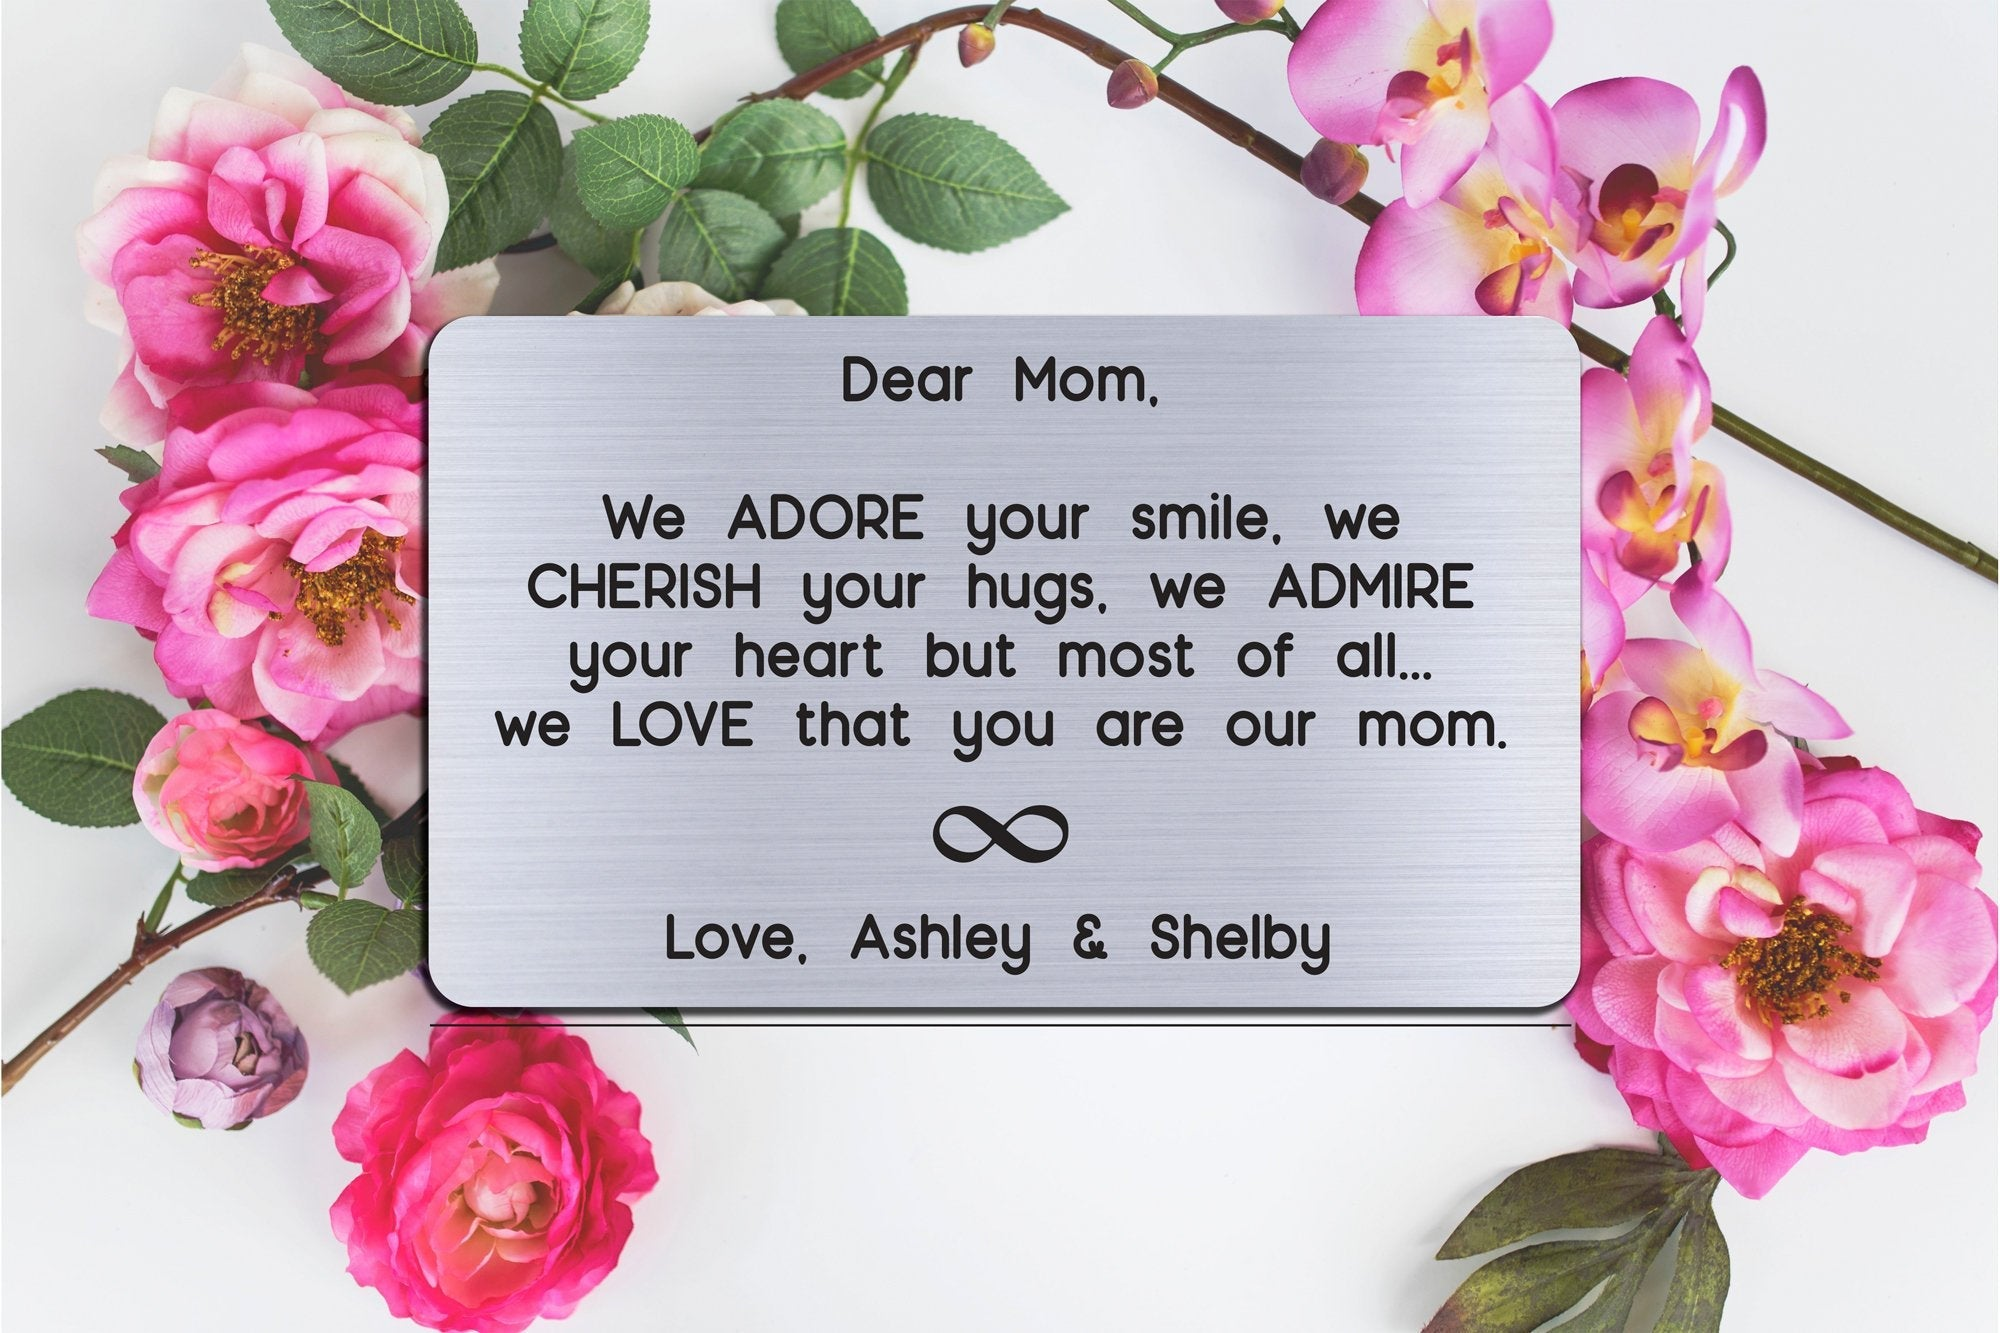 Personalized Wallet Card Insert, Engraved, Gift to Mom, We Adore Your Smile Mom, from the Kids, Silver